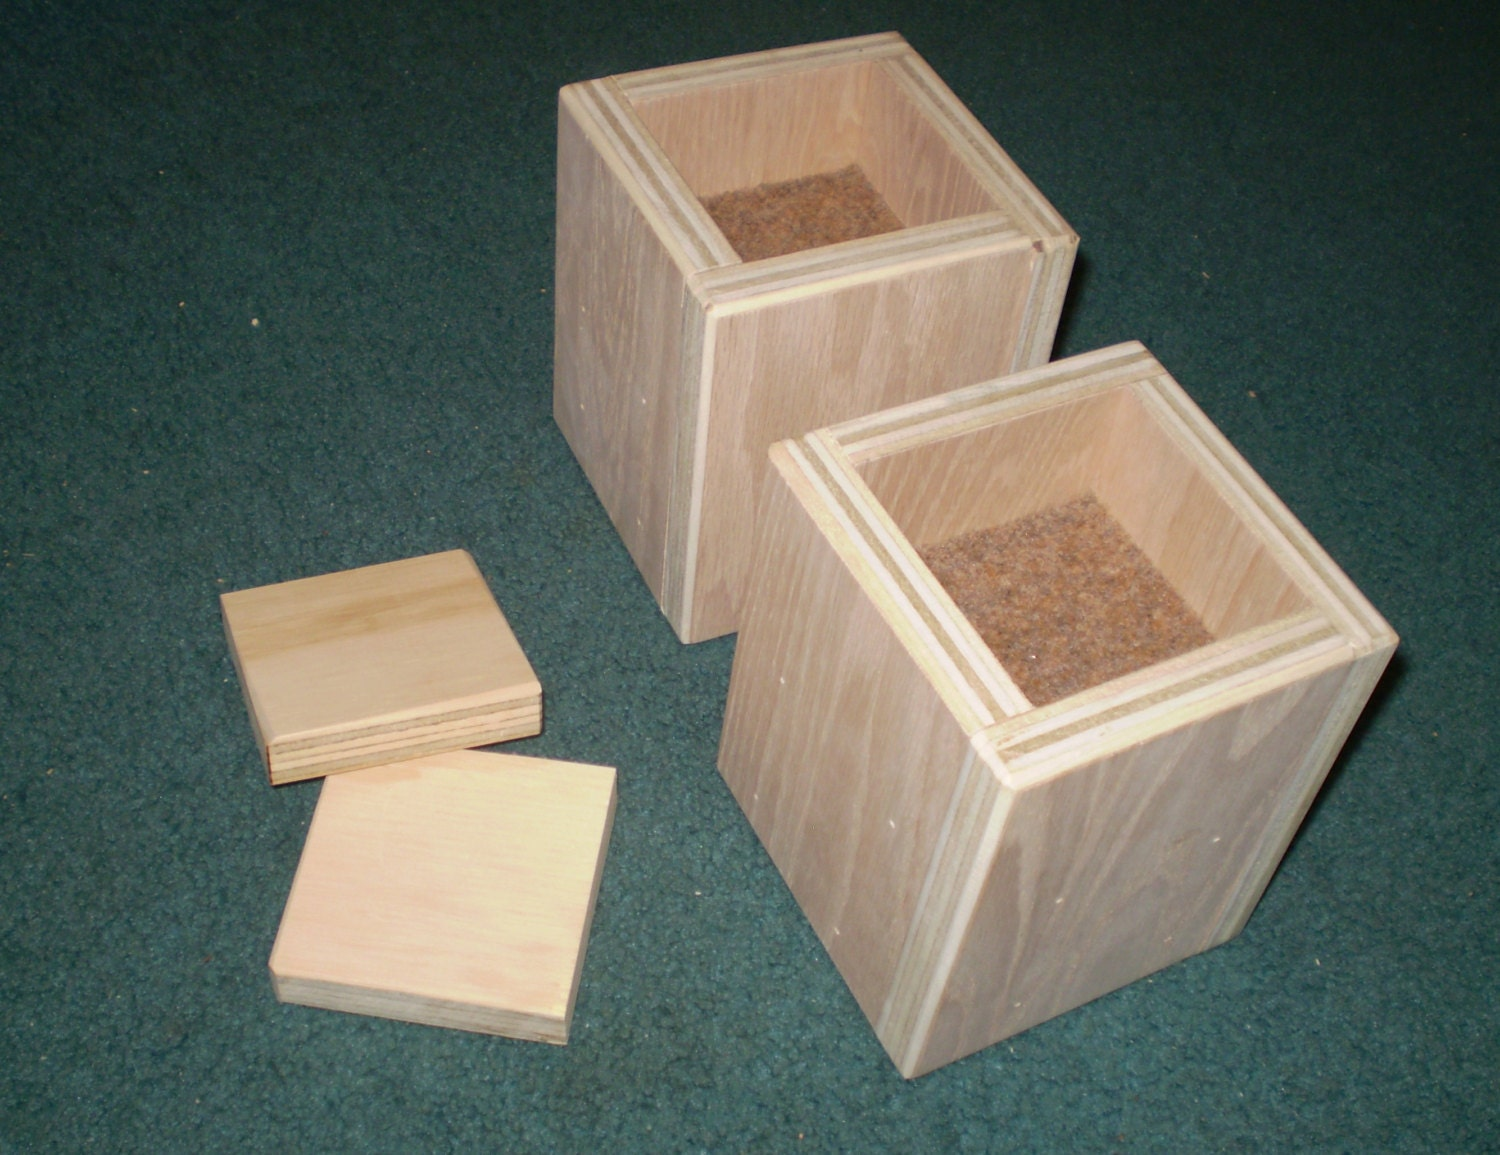 Apathtosavingmoney Wood Furniture Risers